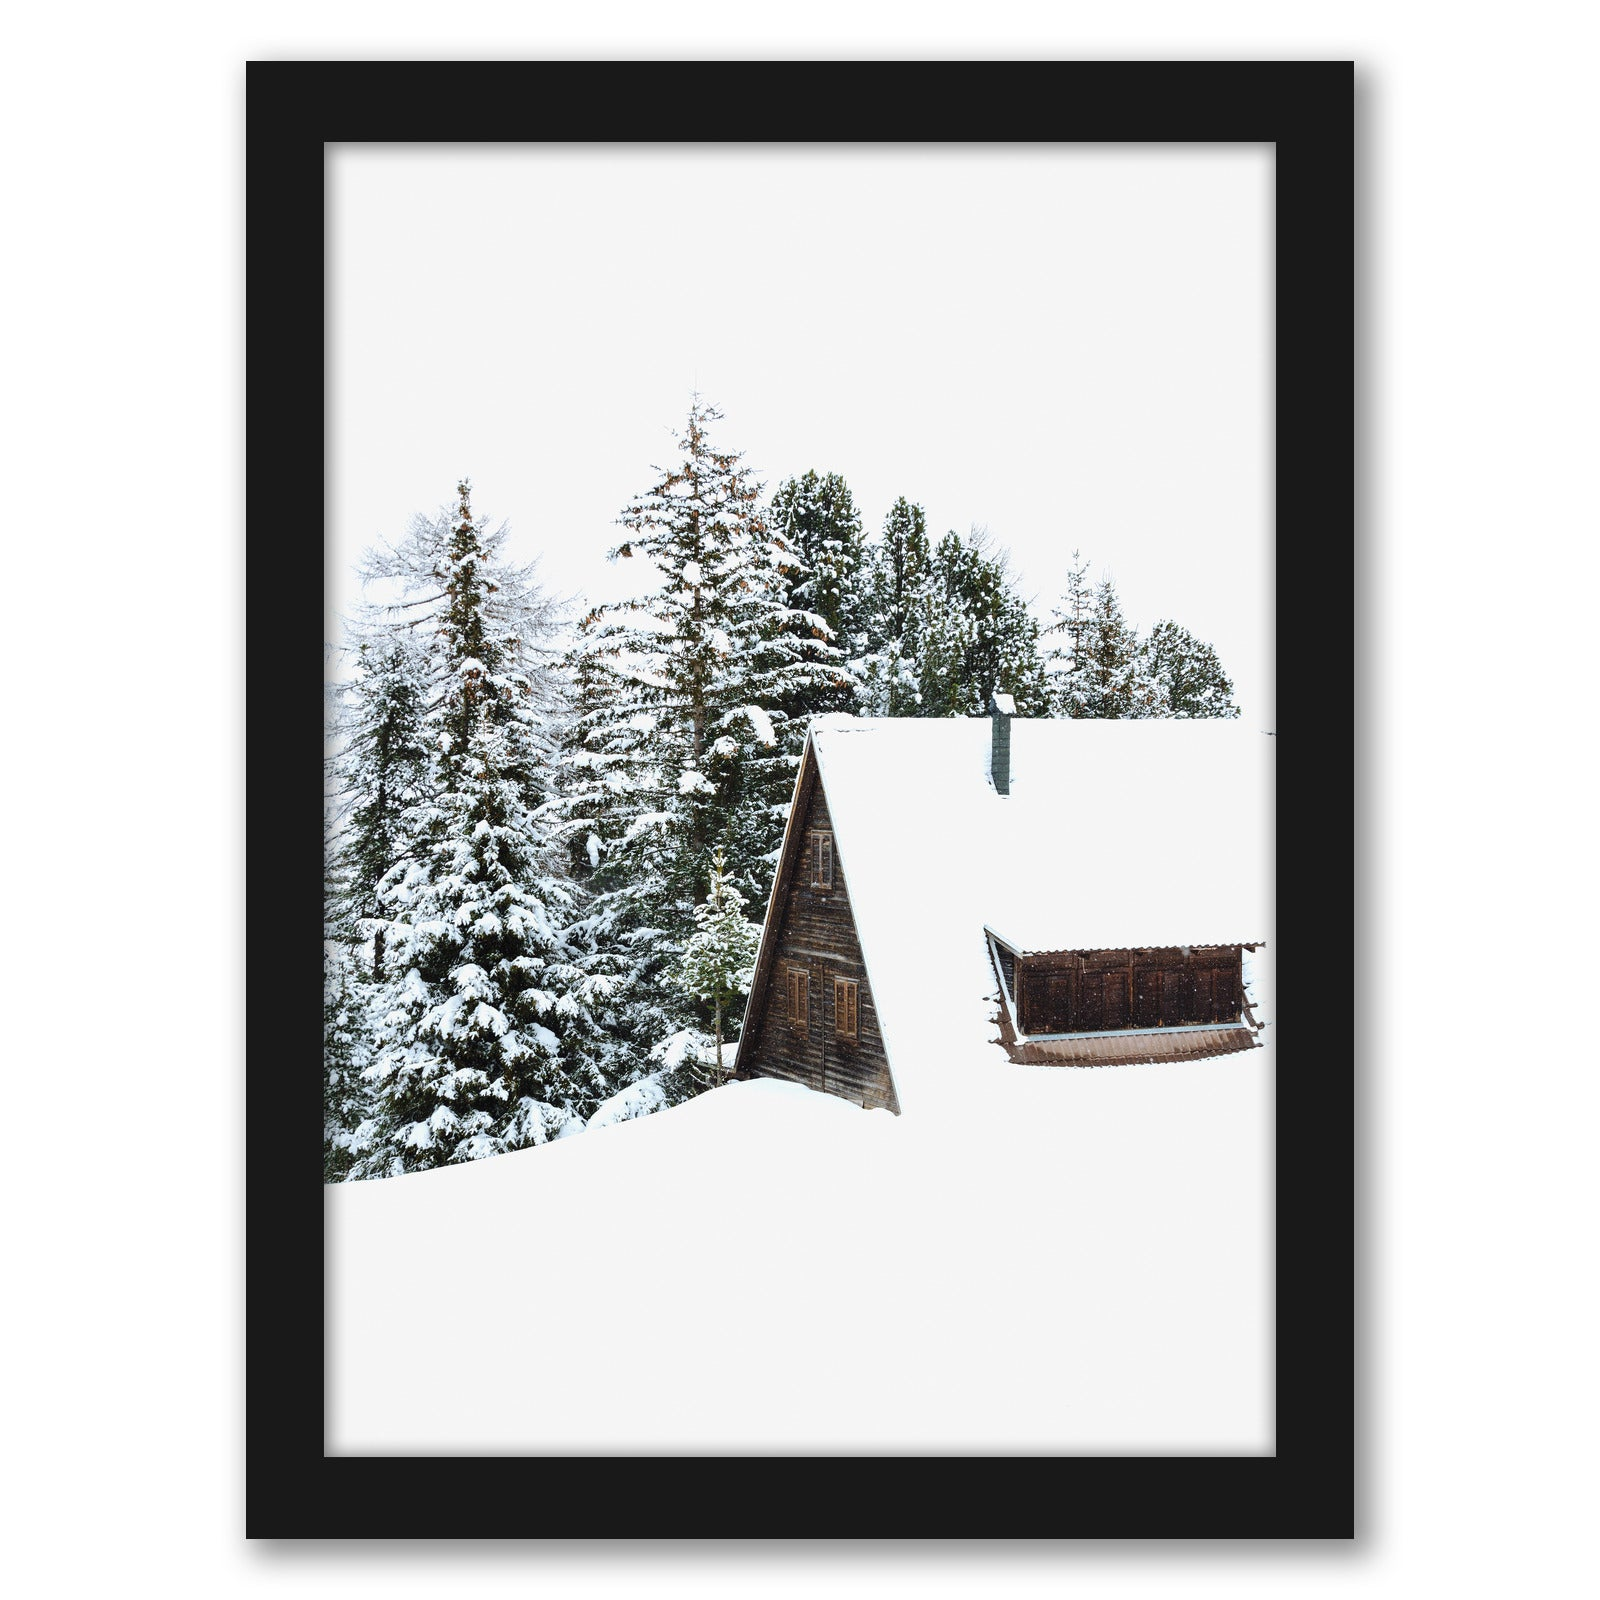 Cabin by Tanya Shumkina - Black Framed Print - Wall Art - Americanflat